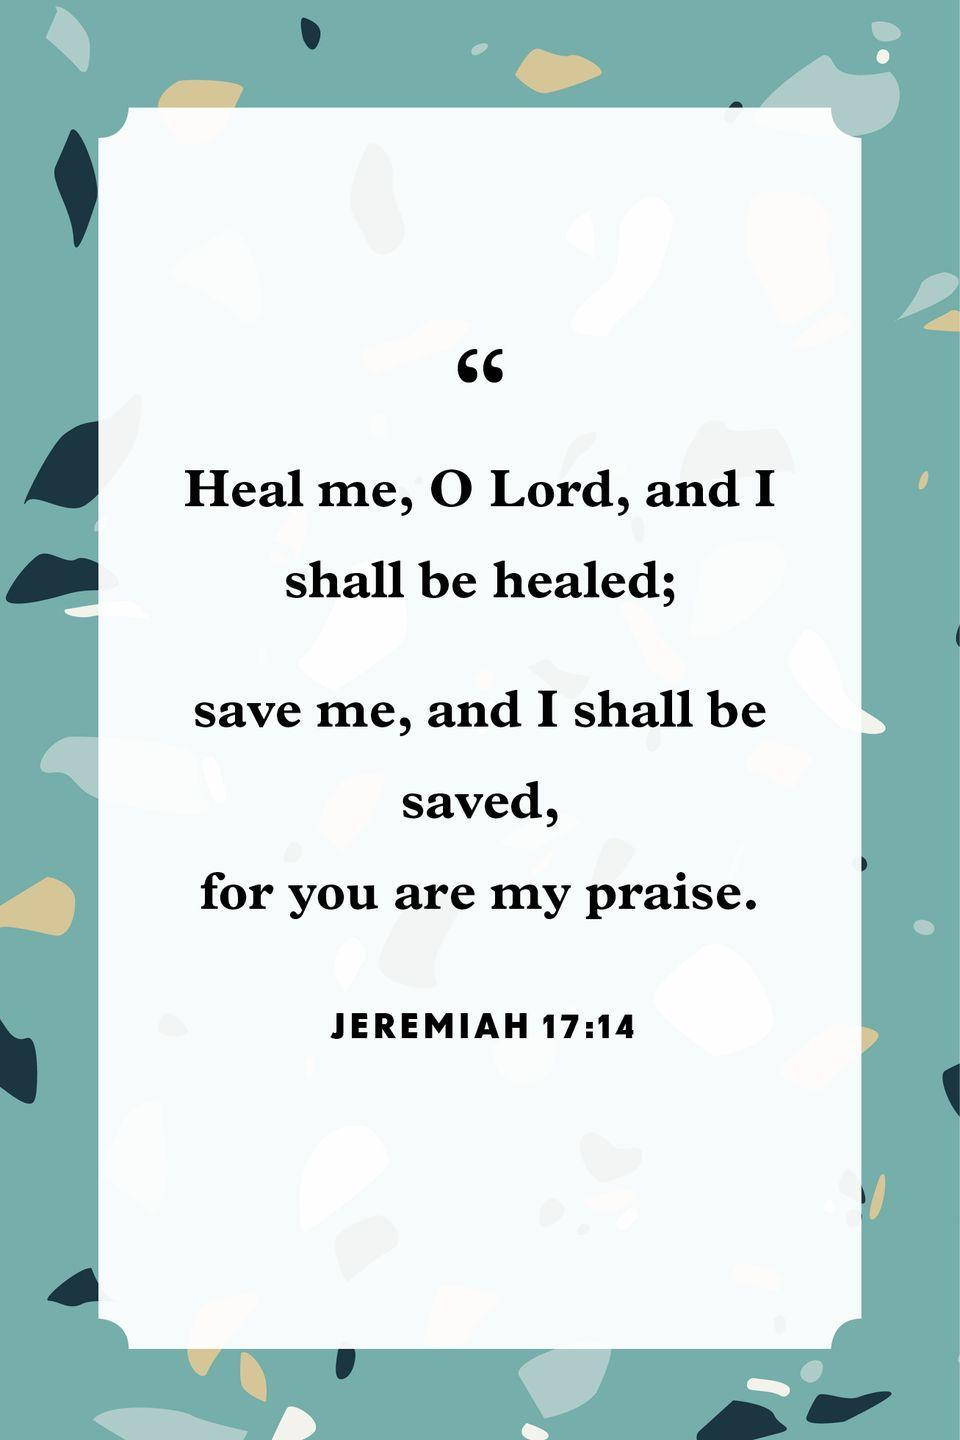 "<p>""Heal me, O Lord, and I shall be healed;<br>save me, and I shall be saved,<br>for you are my praise.""</p>"